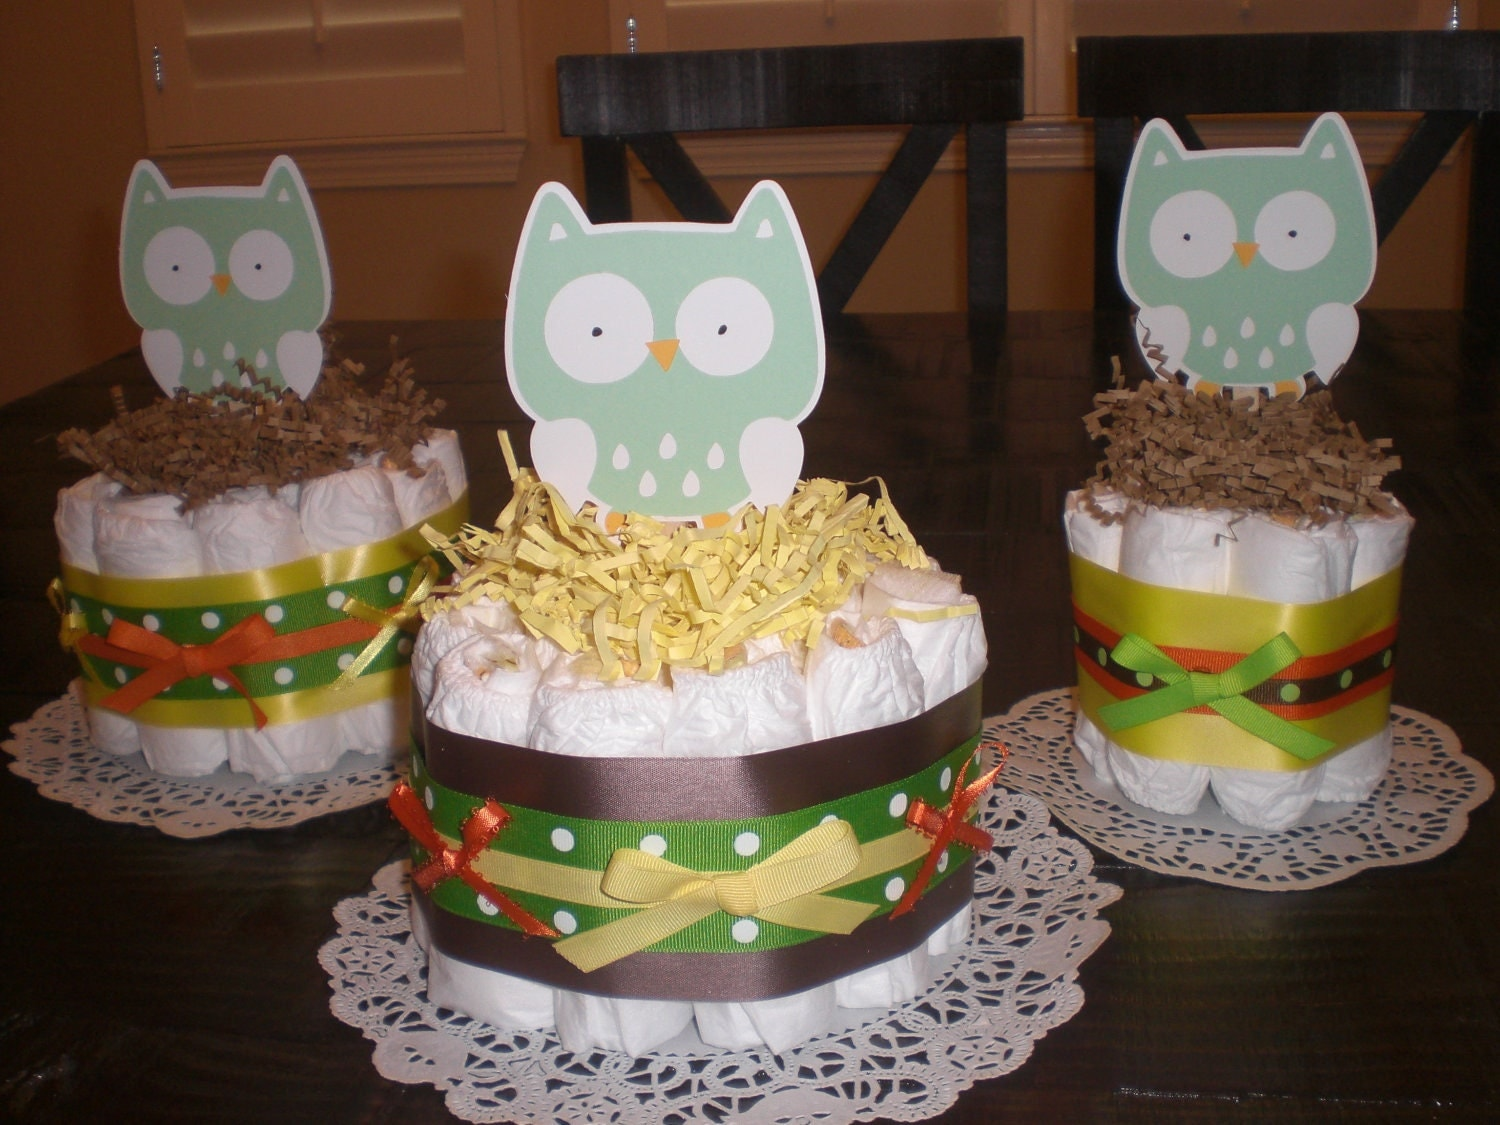 Cake Centerpieces For Baby Shower : Hoot Owl Mini Diaper Cakes Baby Shower Centerpieces in pink